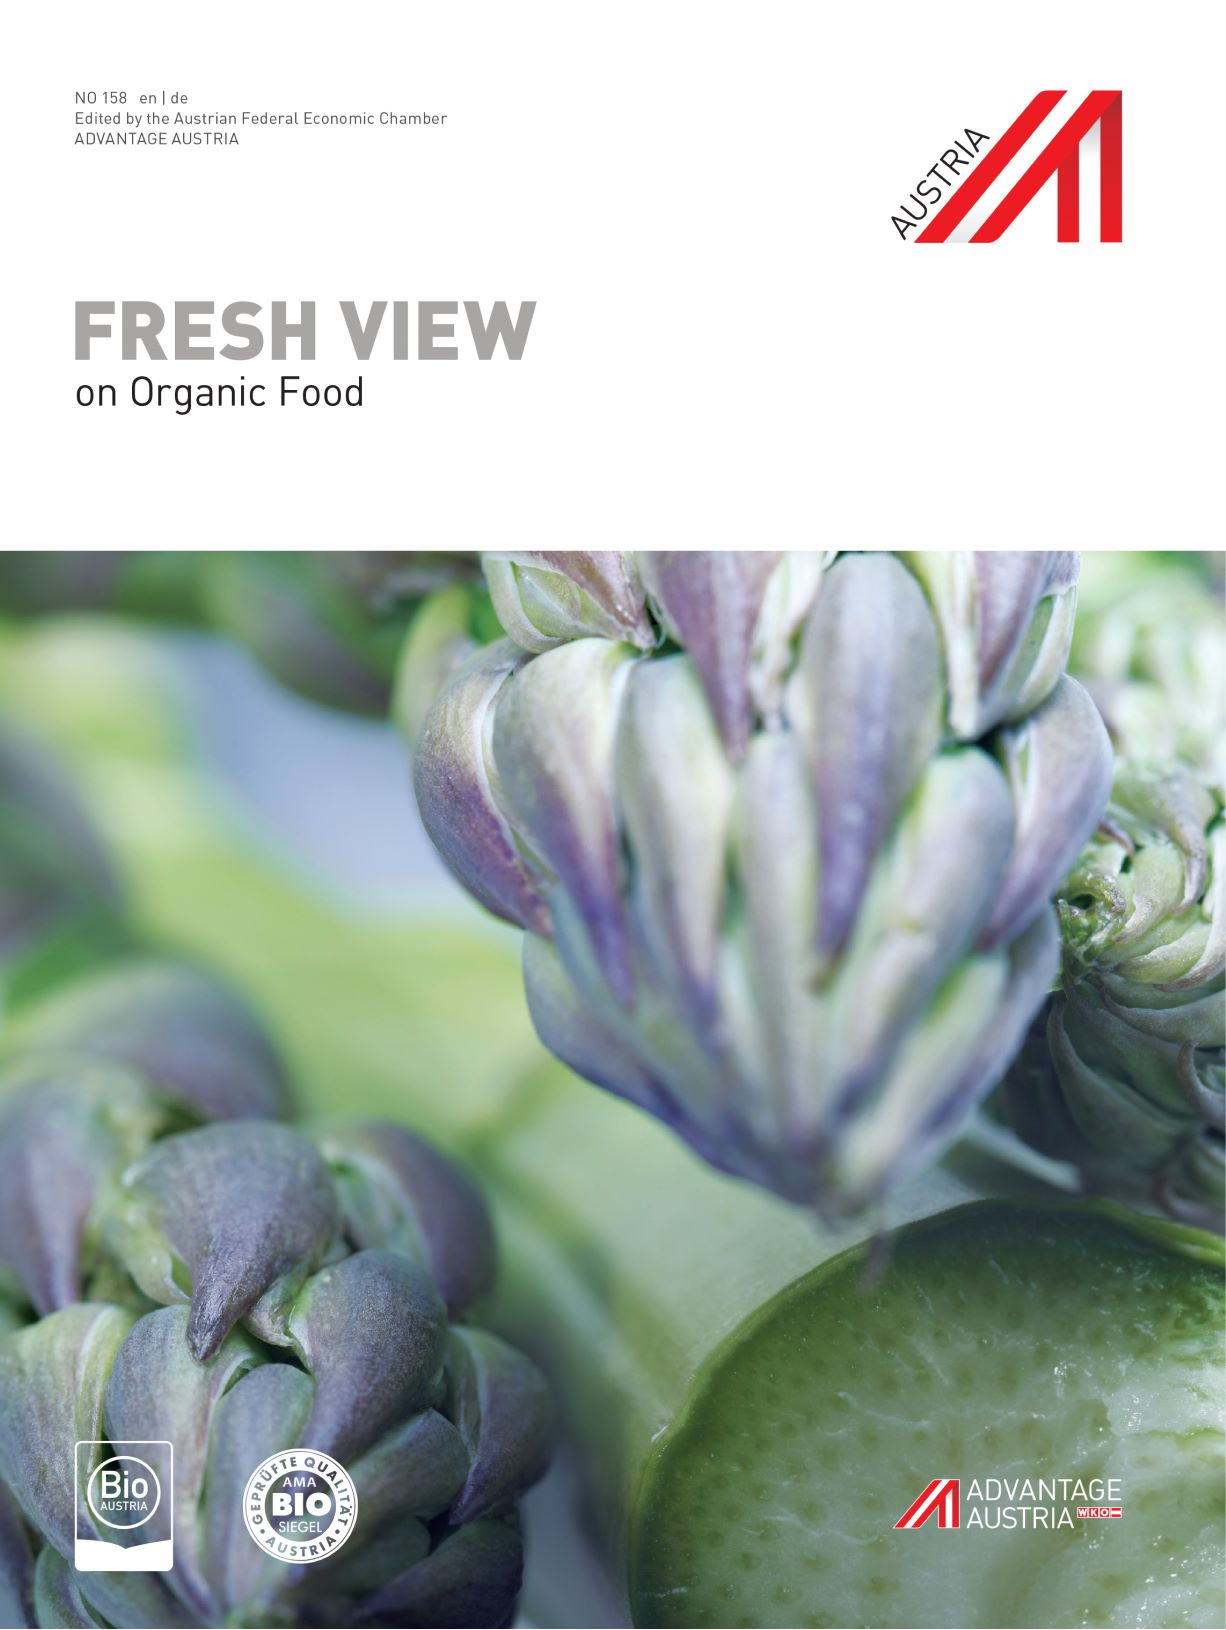 No. 158, Fresh View, Organic Food, en | de